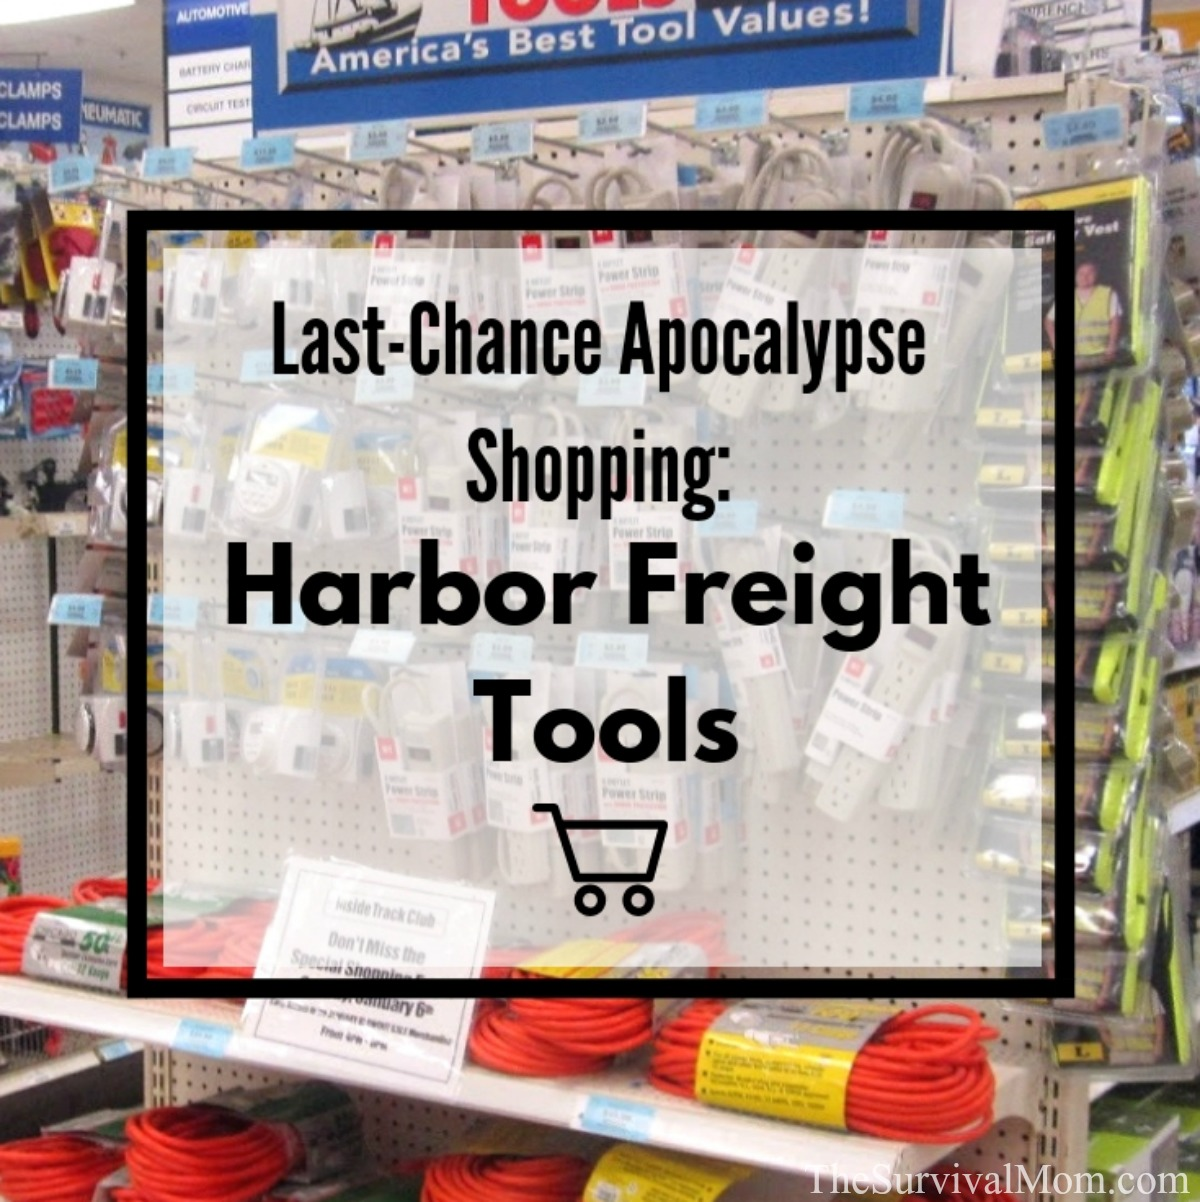 apocalypse shopping harbor freight, prepper hardware store